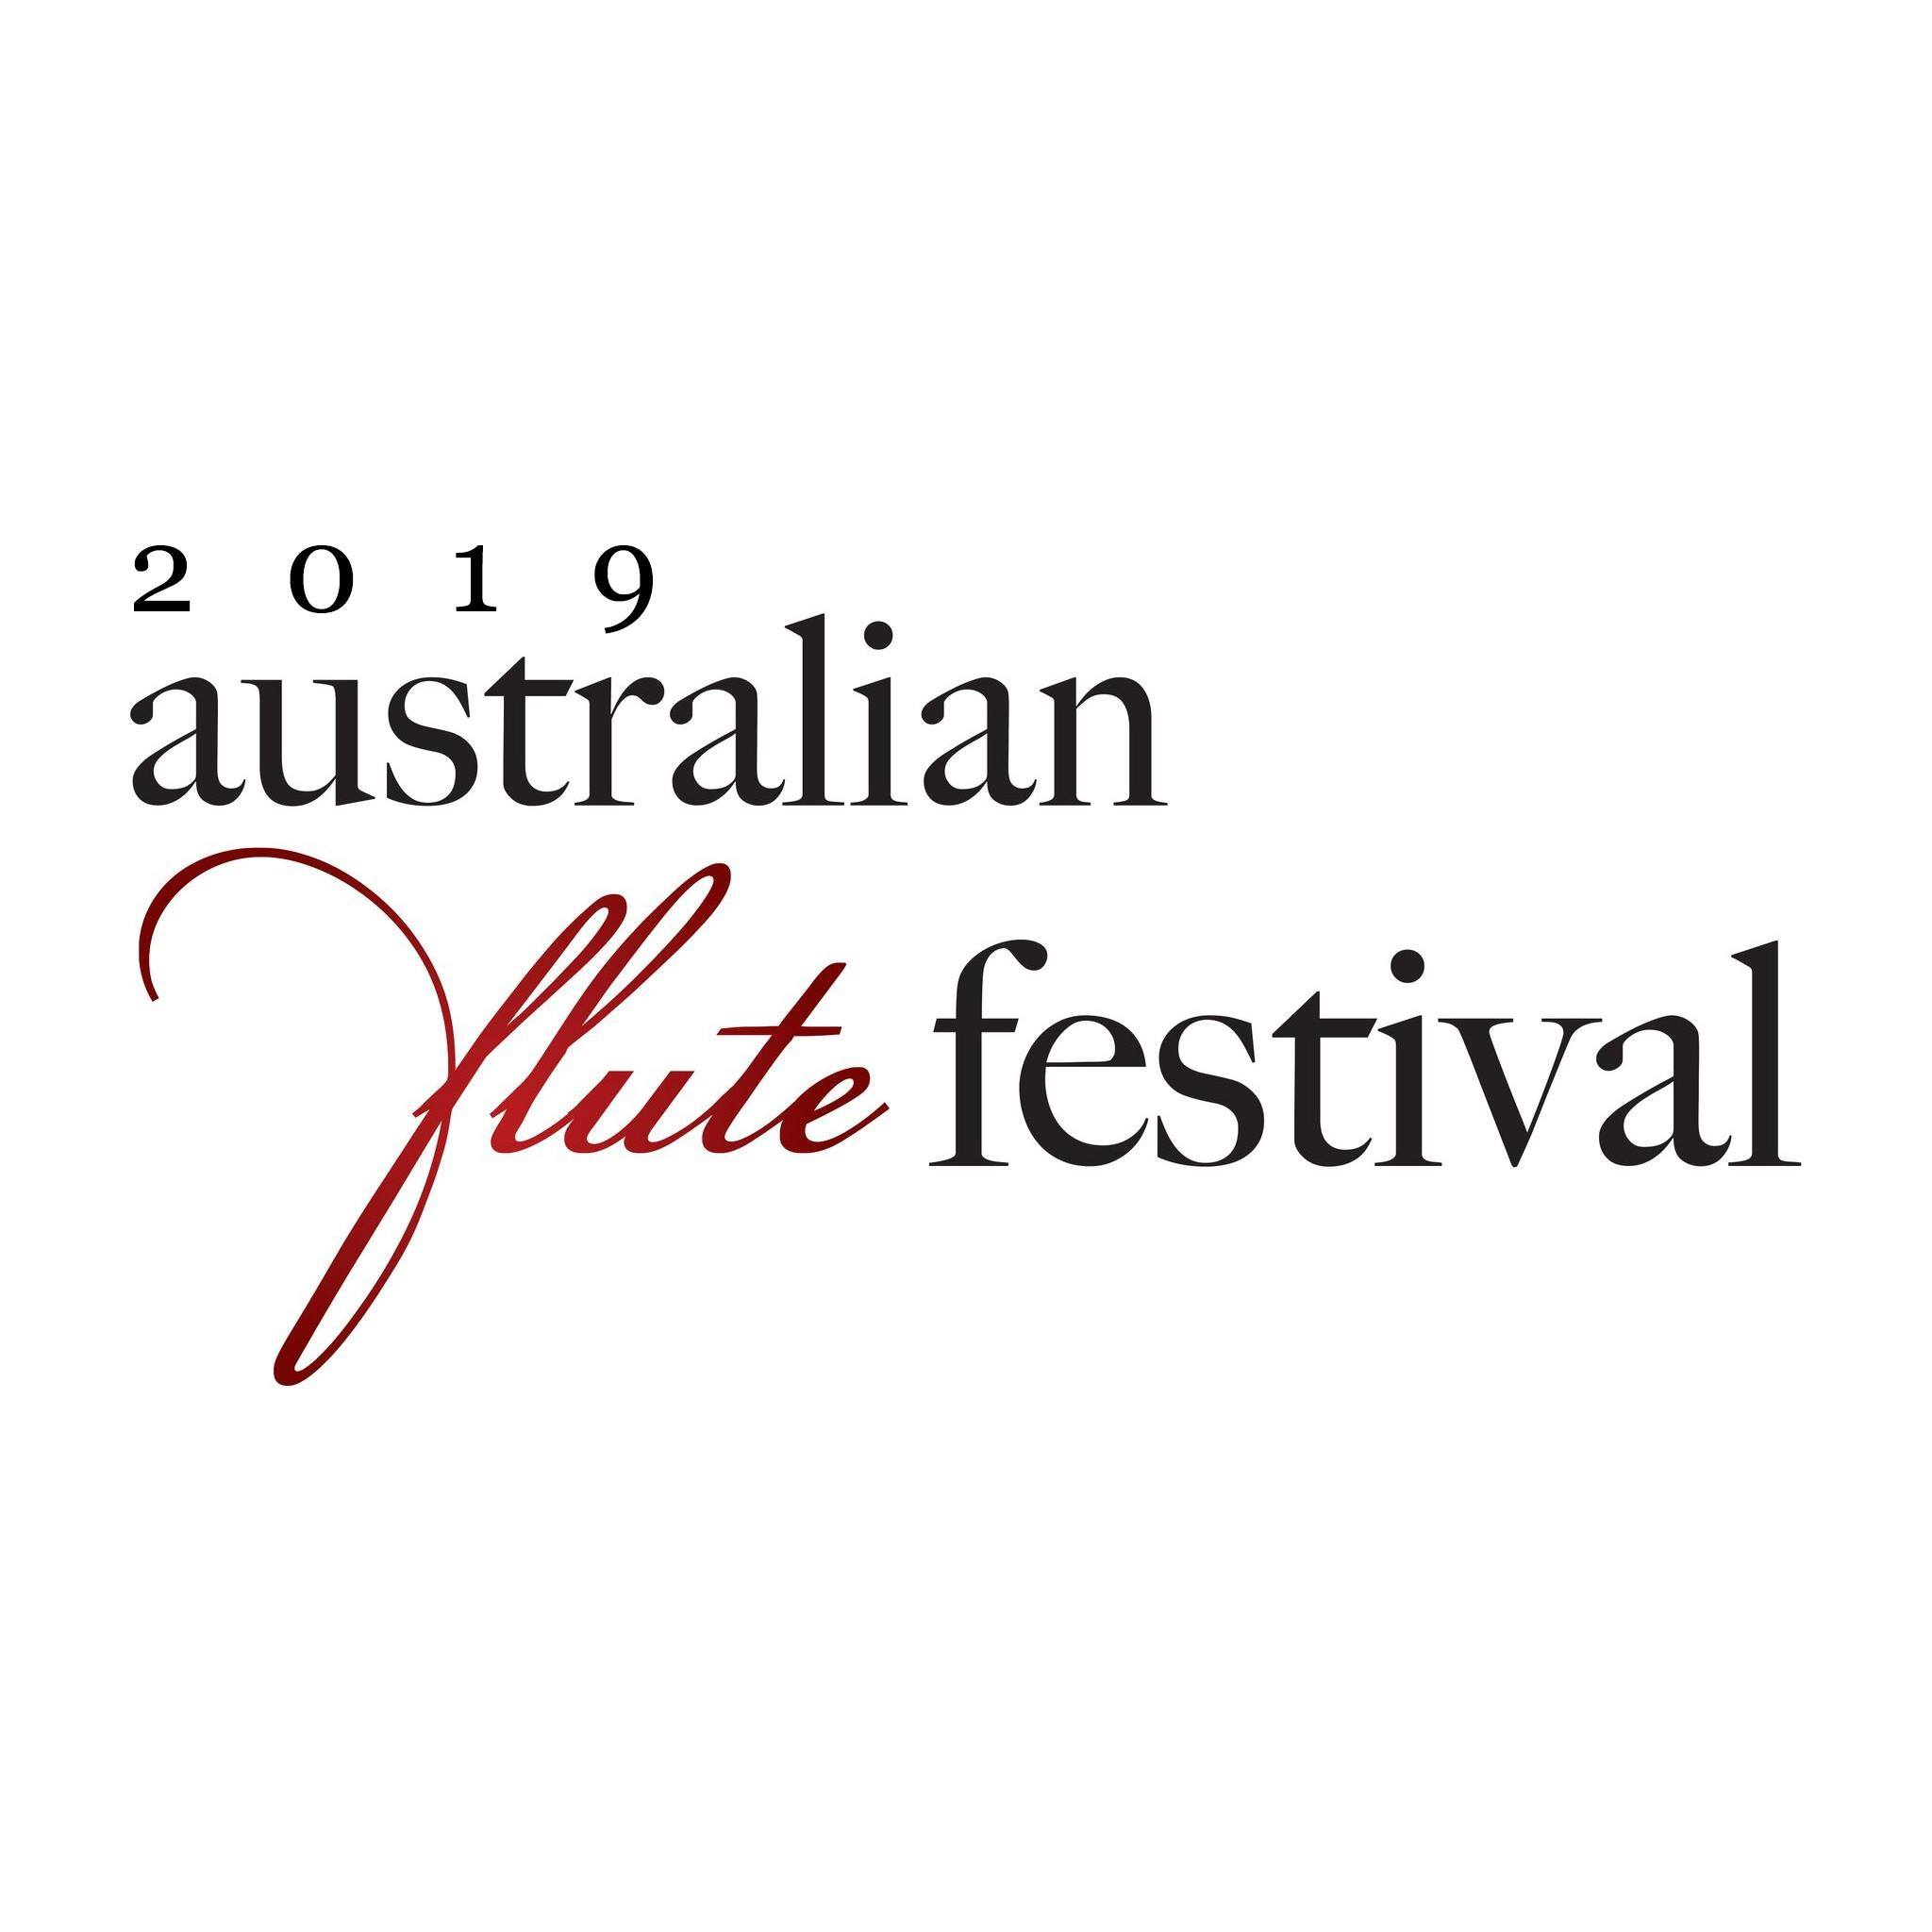 Australian Flute Festival 2019 - 5 - 8 July 2019Deborah will present a workshop demonstrating the application of psychological research to music performance anxiety.Deborah will also be available throughout the conference for free introductory counselling sessions.